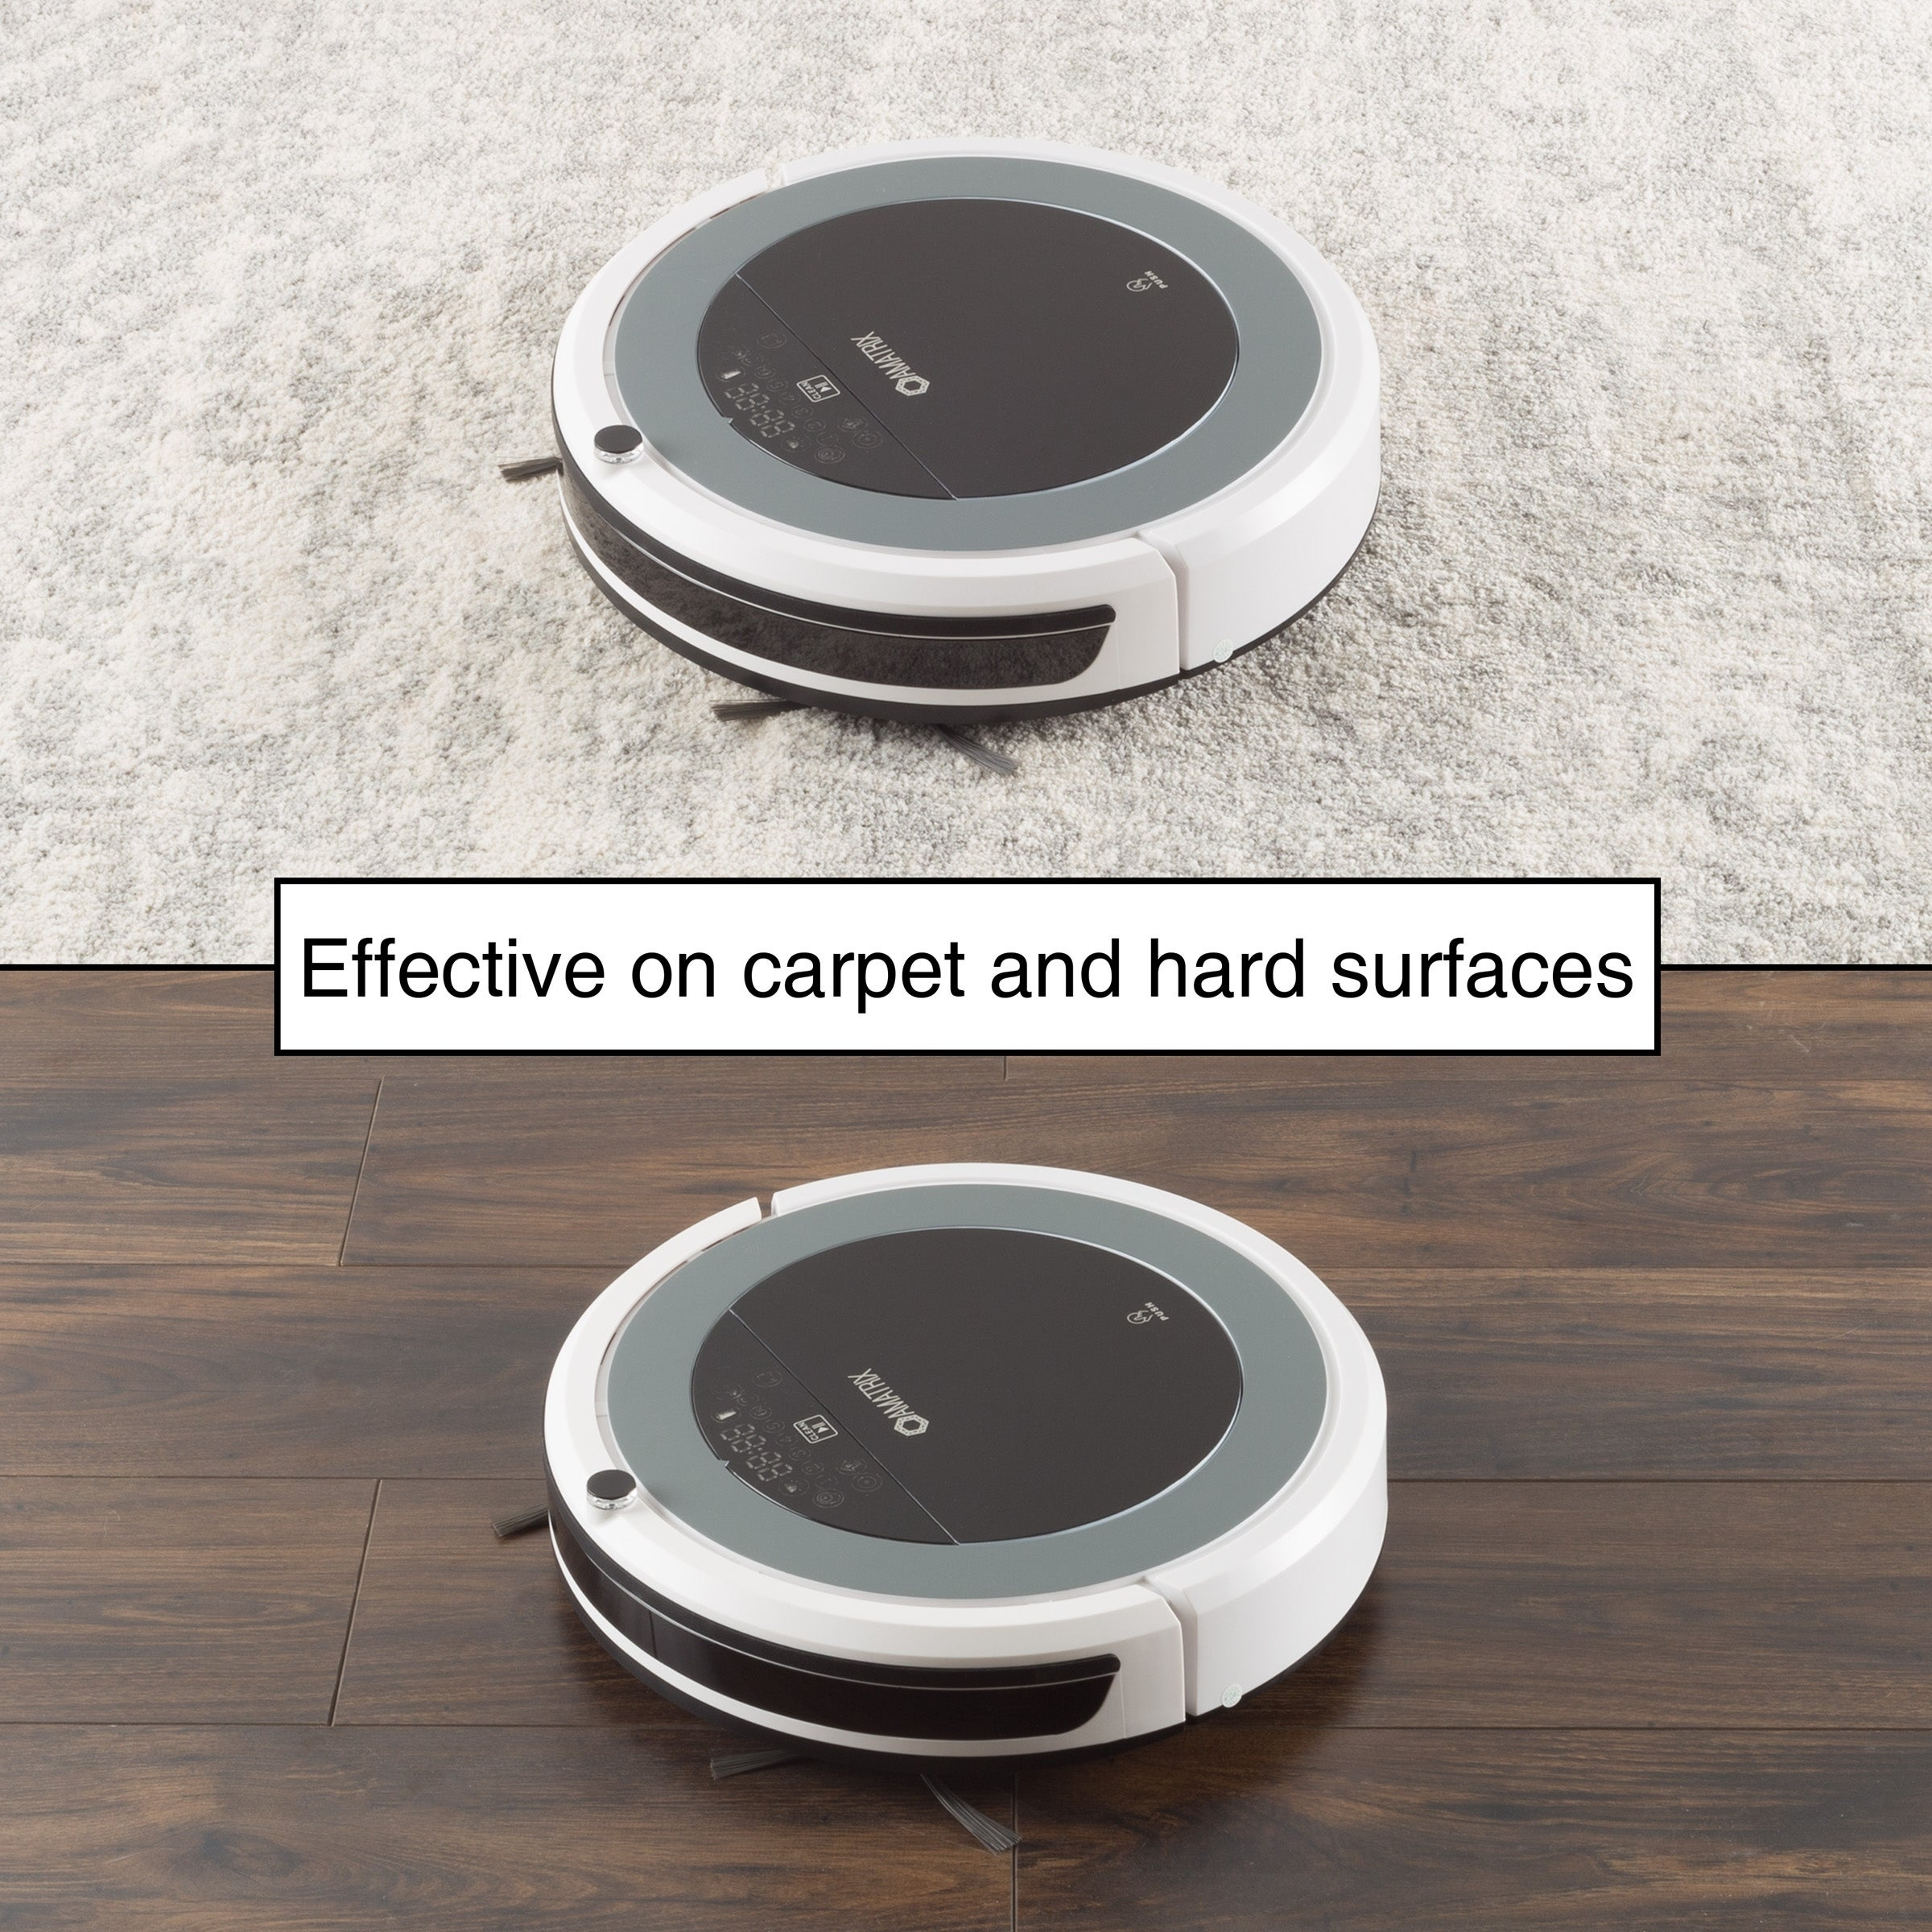 robot sale remote i htm cleaner end control vacuum with sjkelectrical am w philips floor